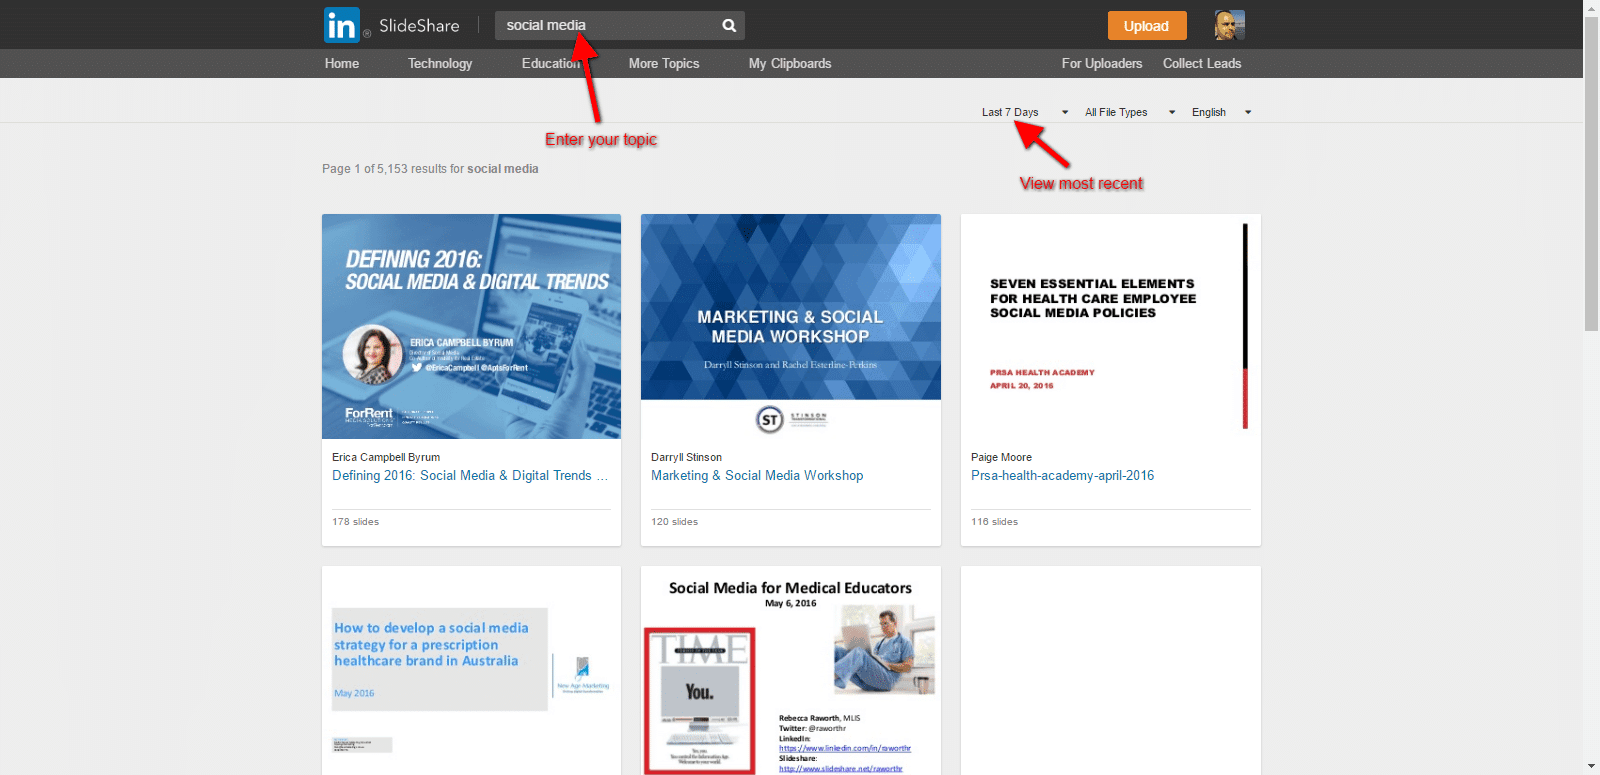 slideshare for social media content